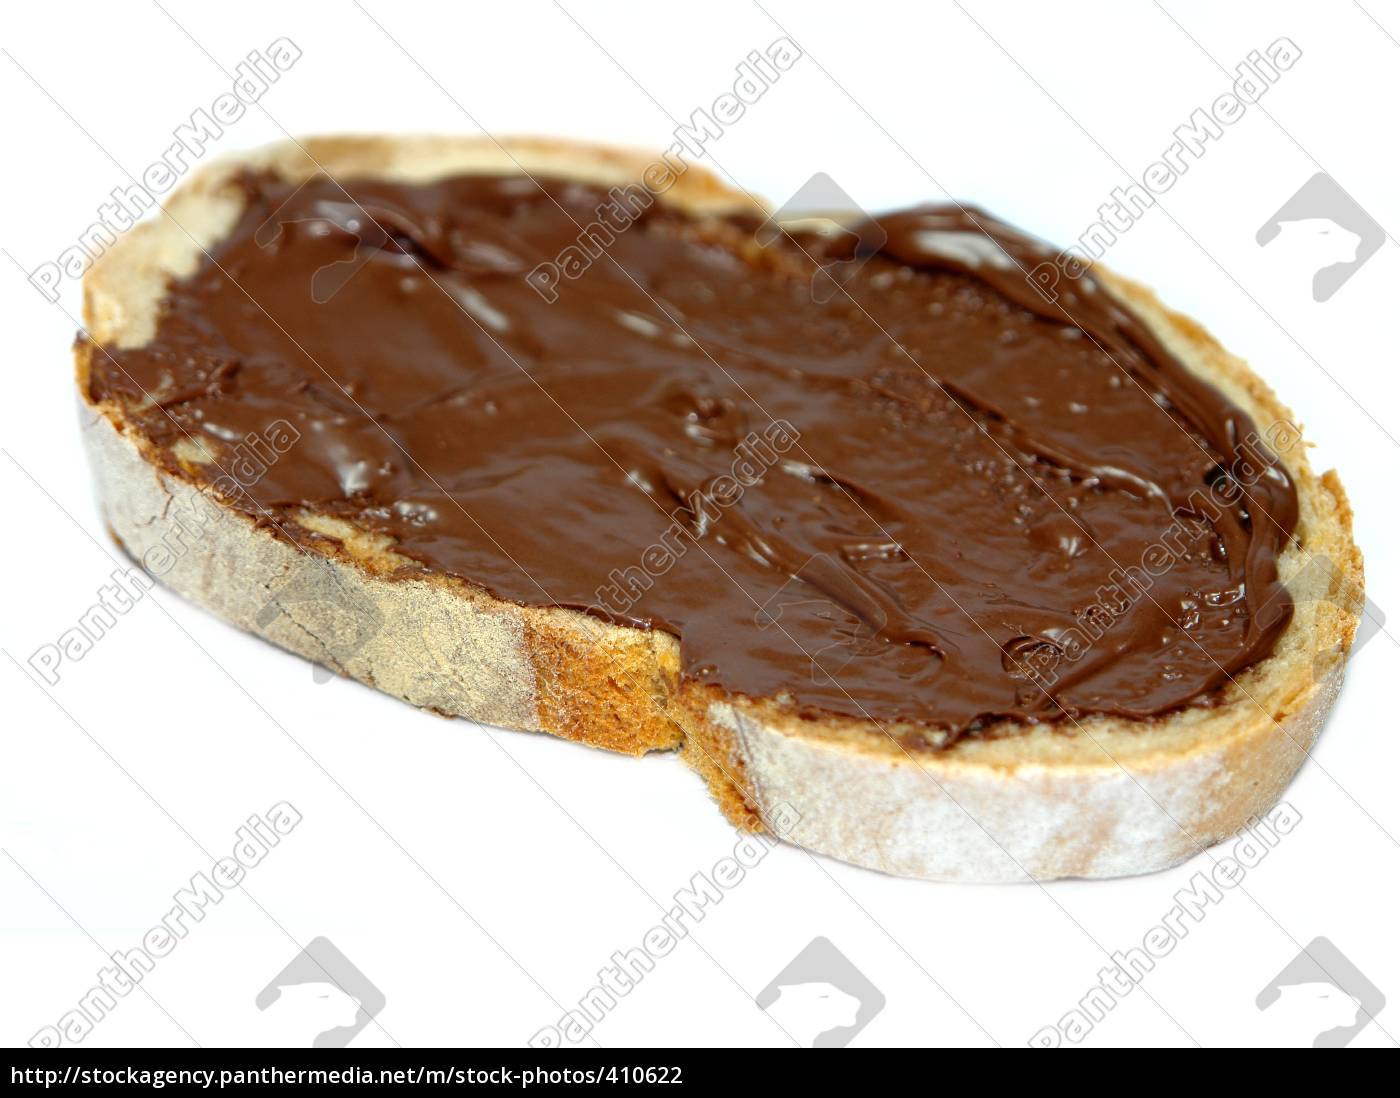 chocolate, bread - 410622